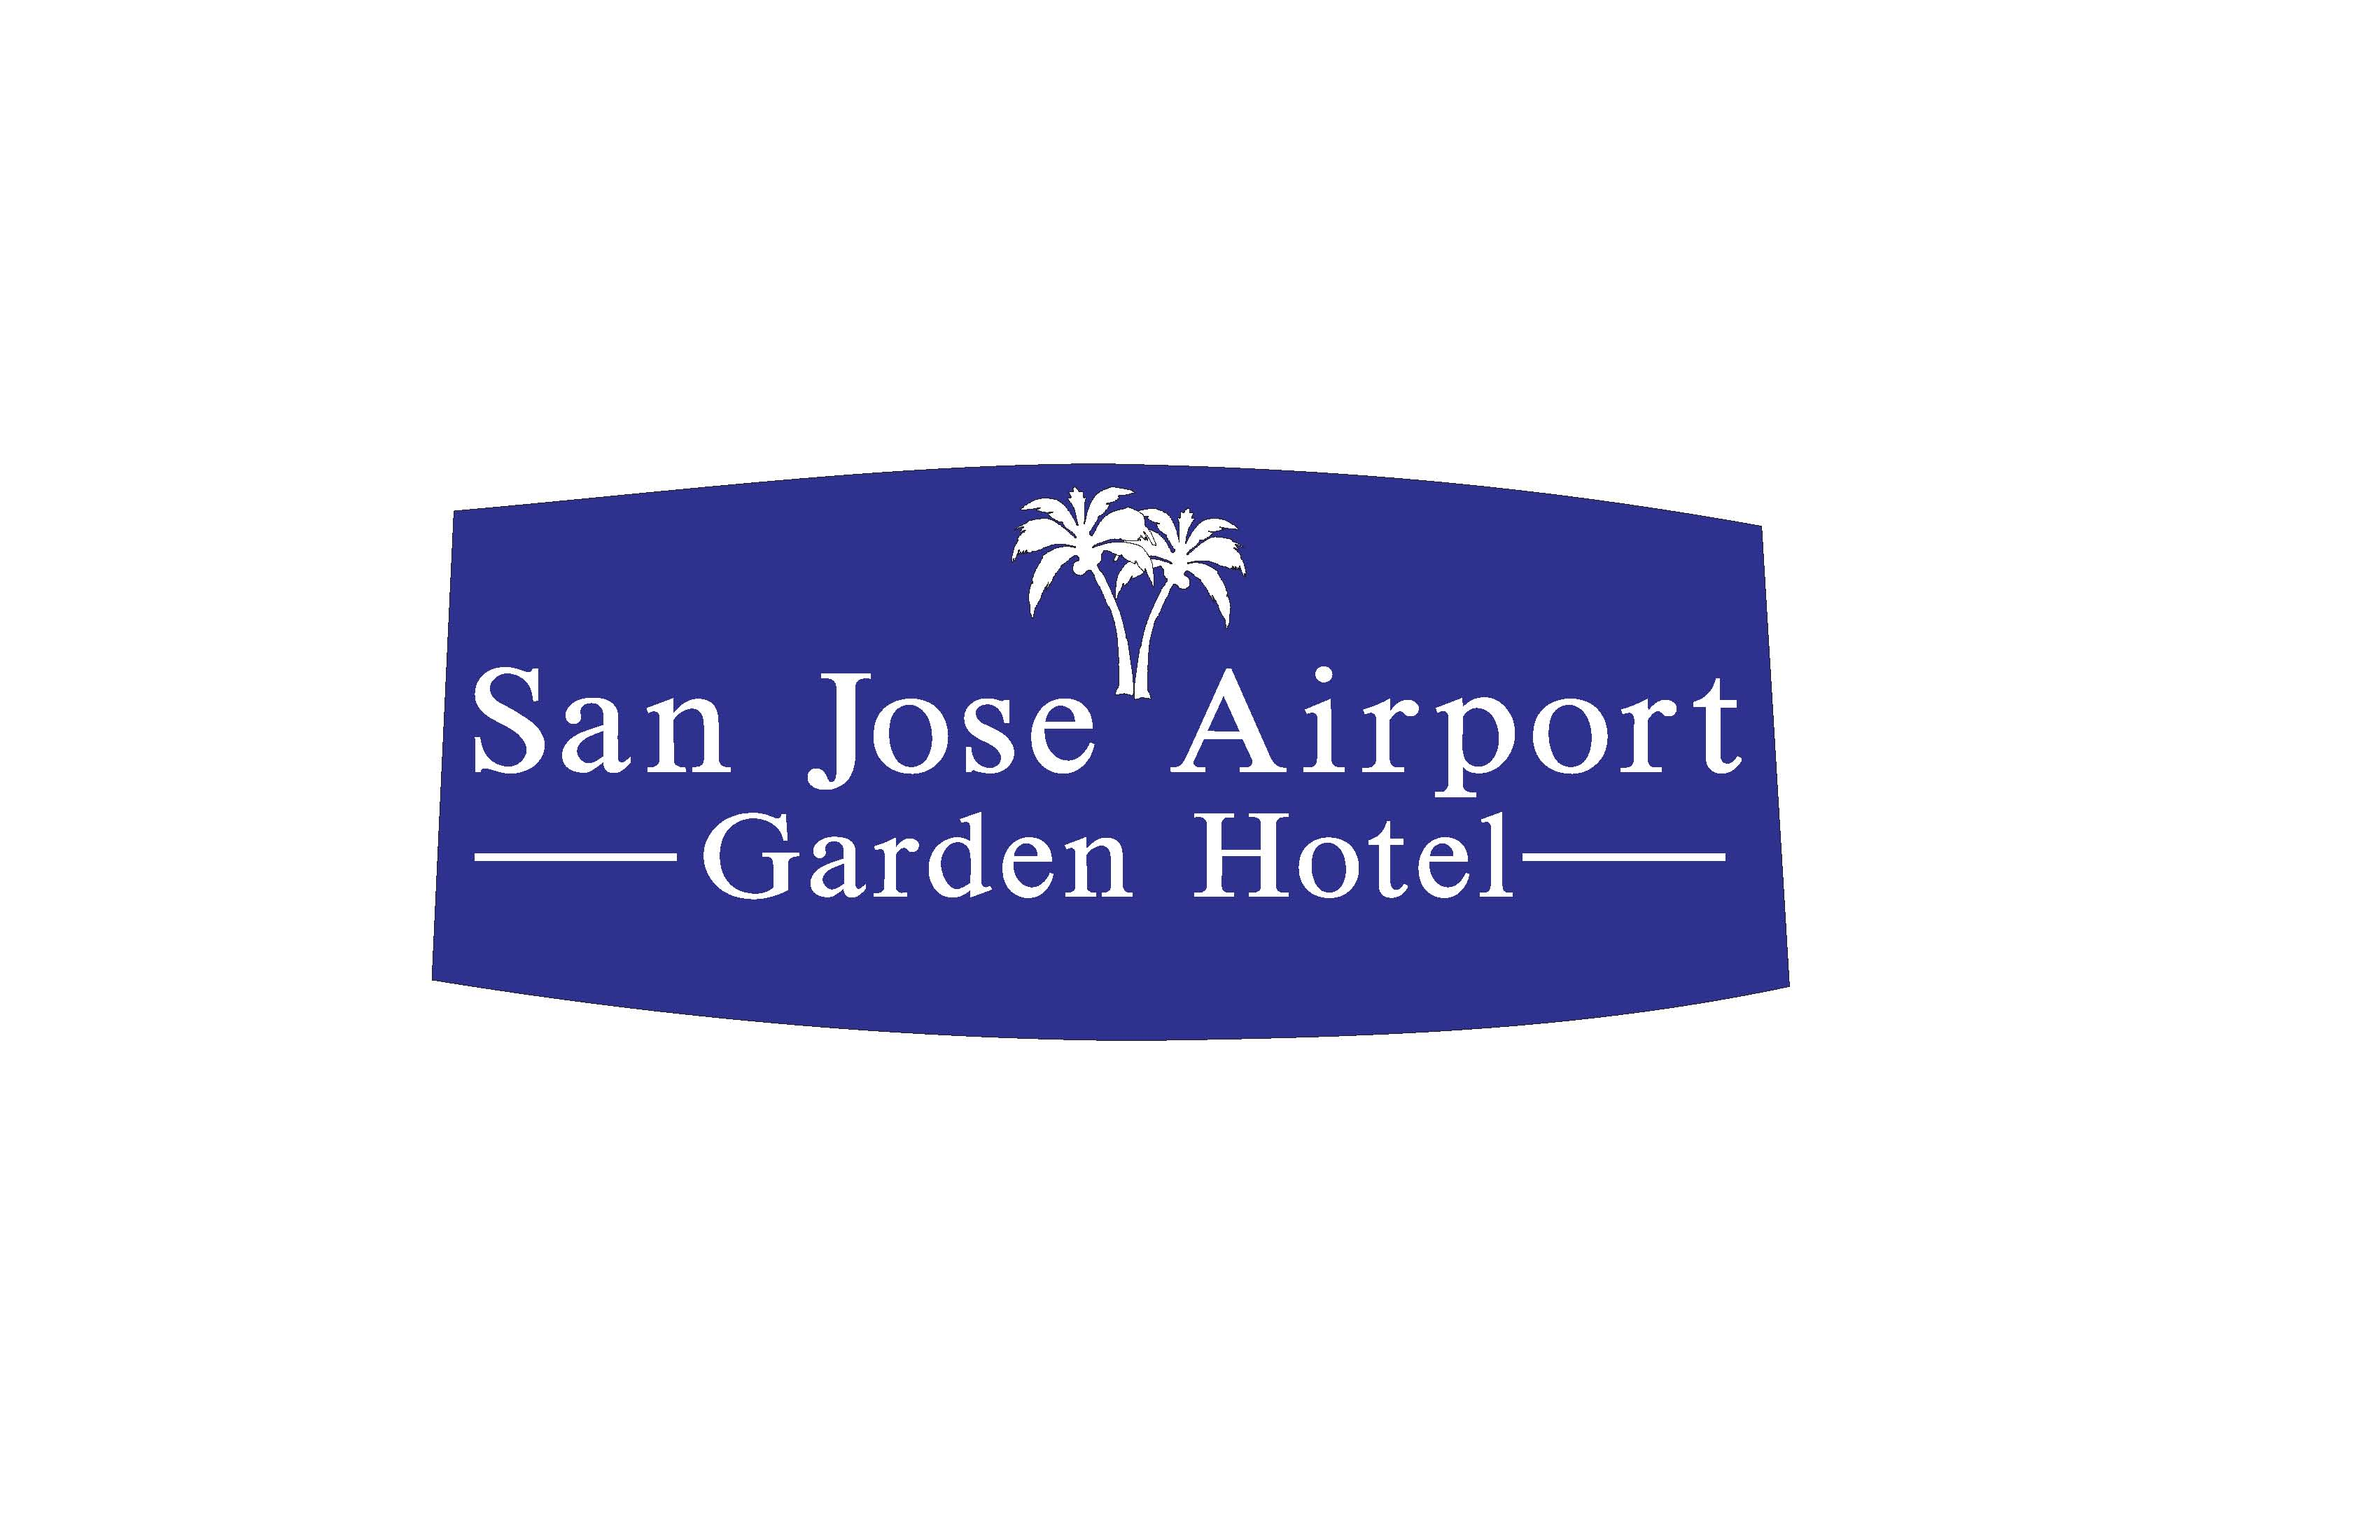 San Jose Airport Garden Hotel SF Station